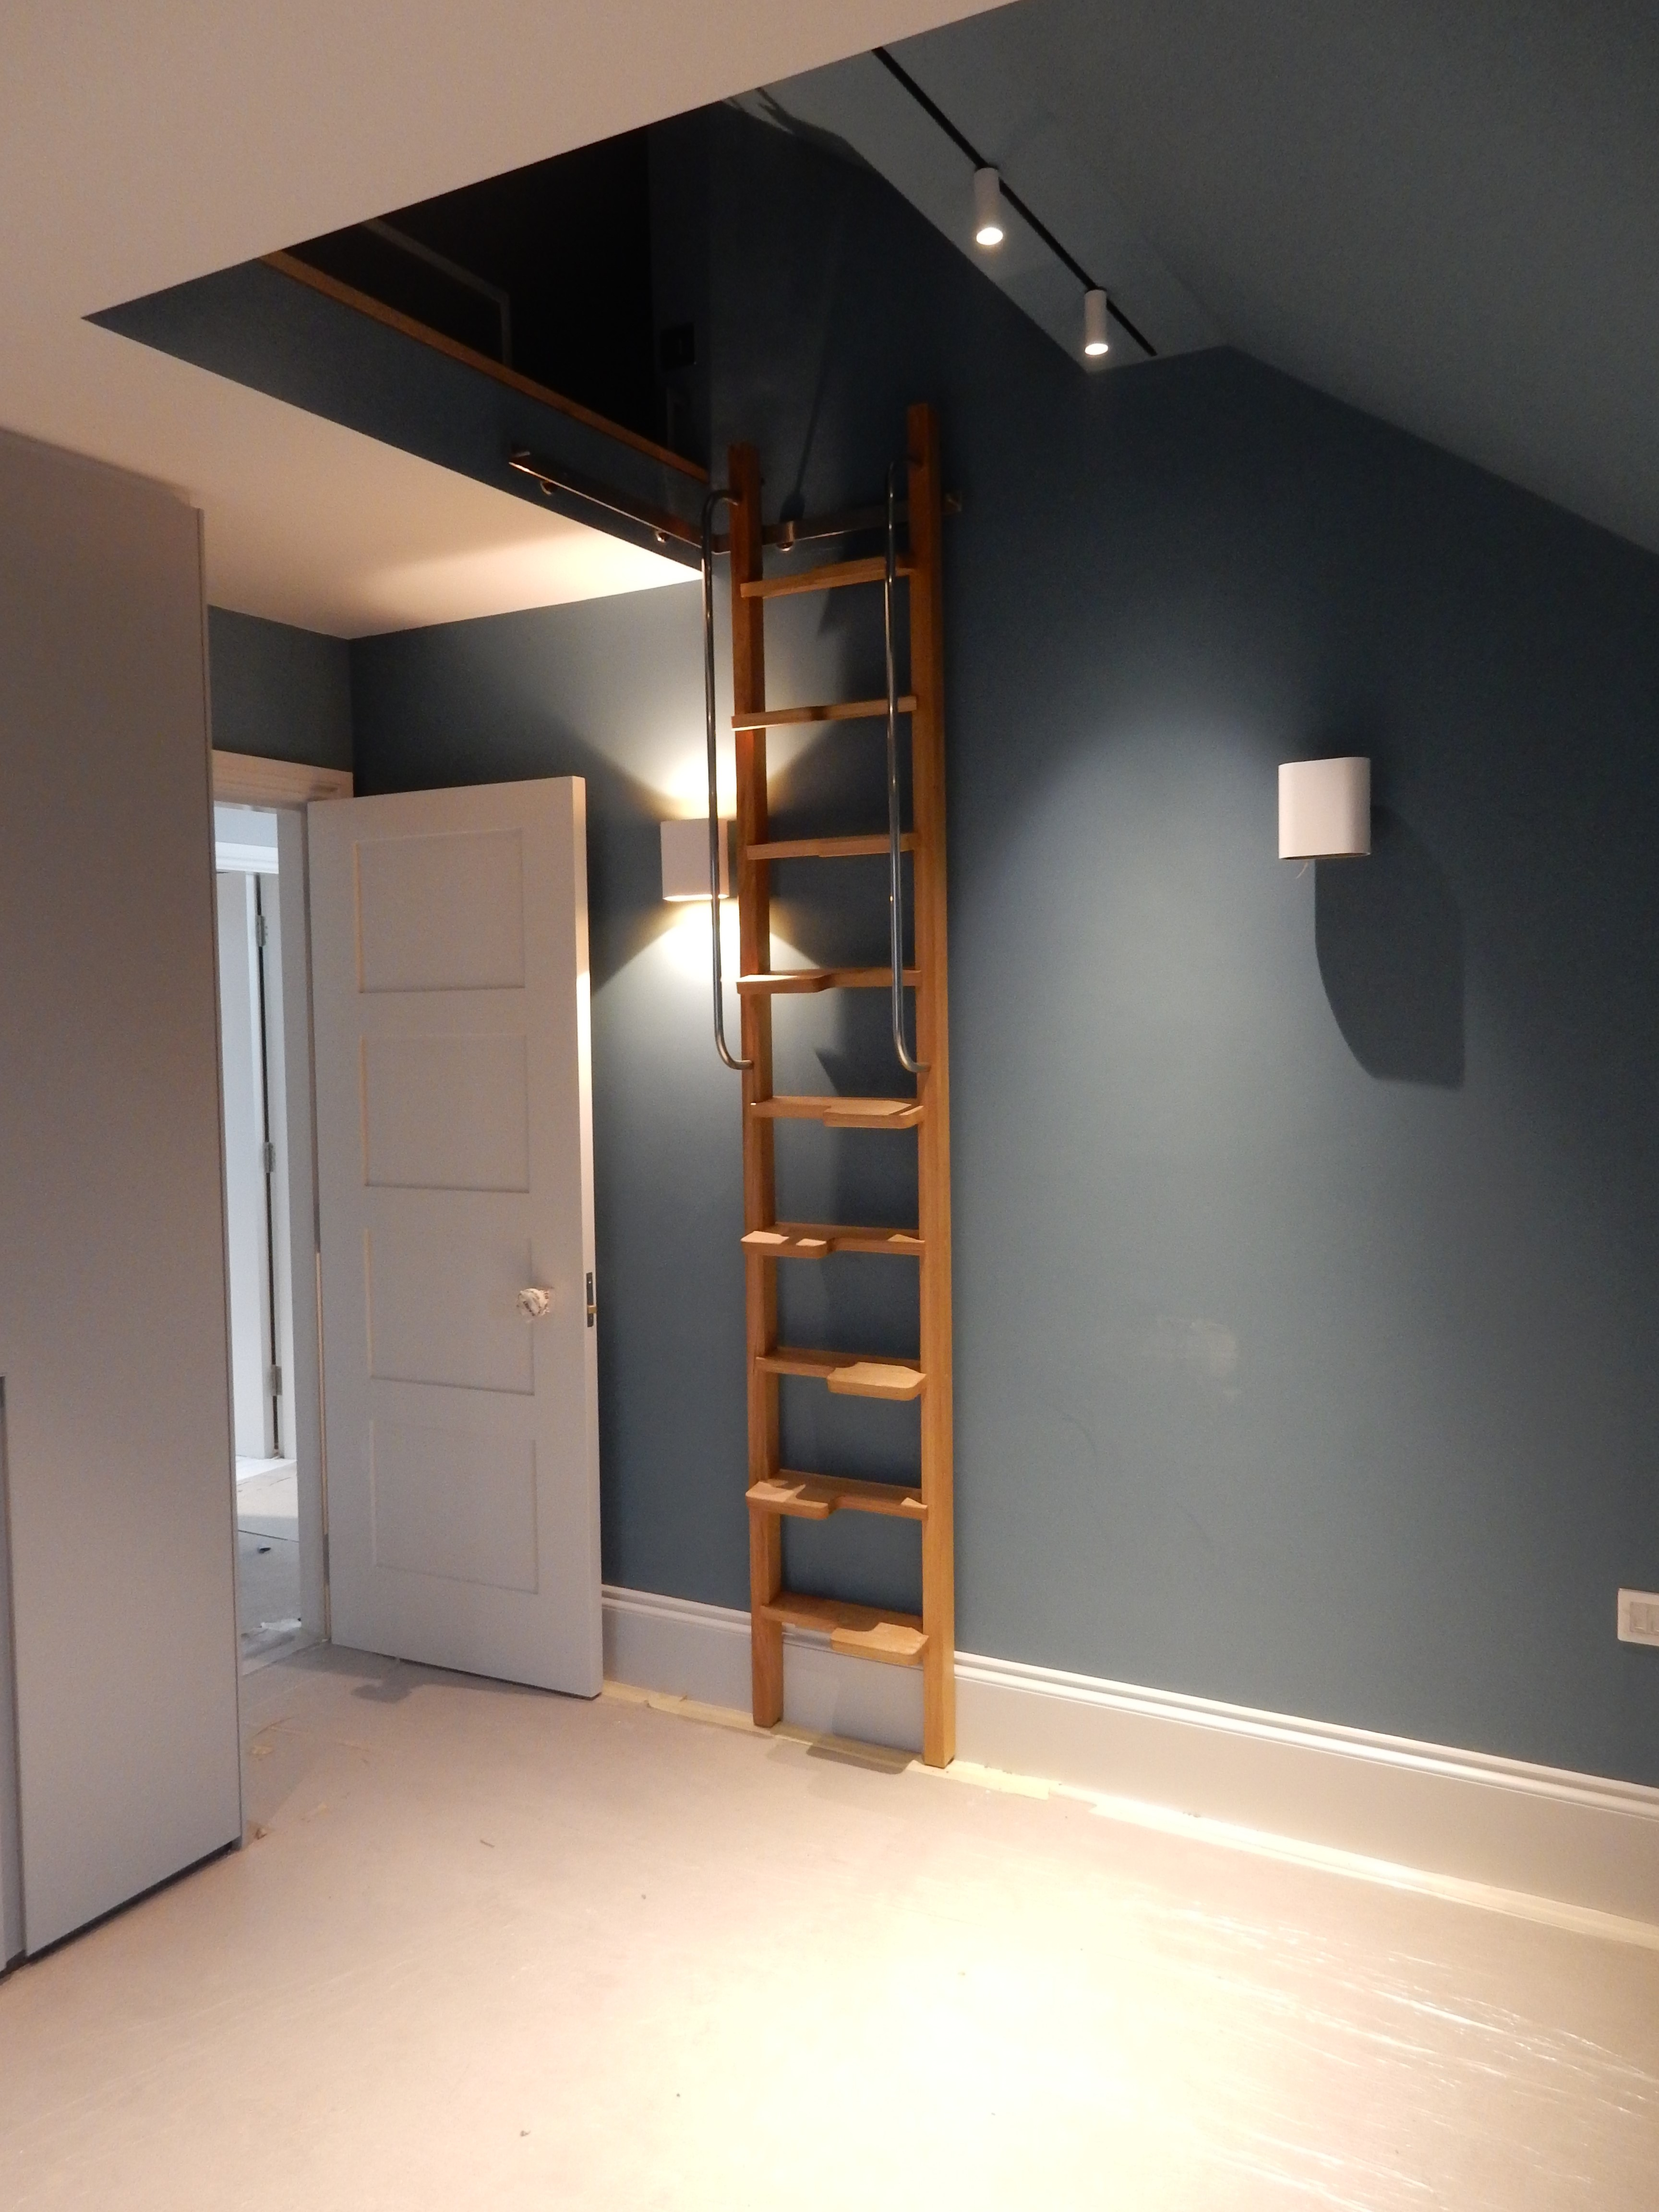 creativemass - bed deck ladder, loft space, kids bedroom, London